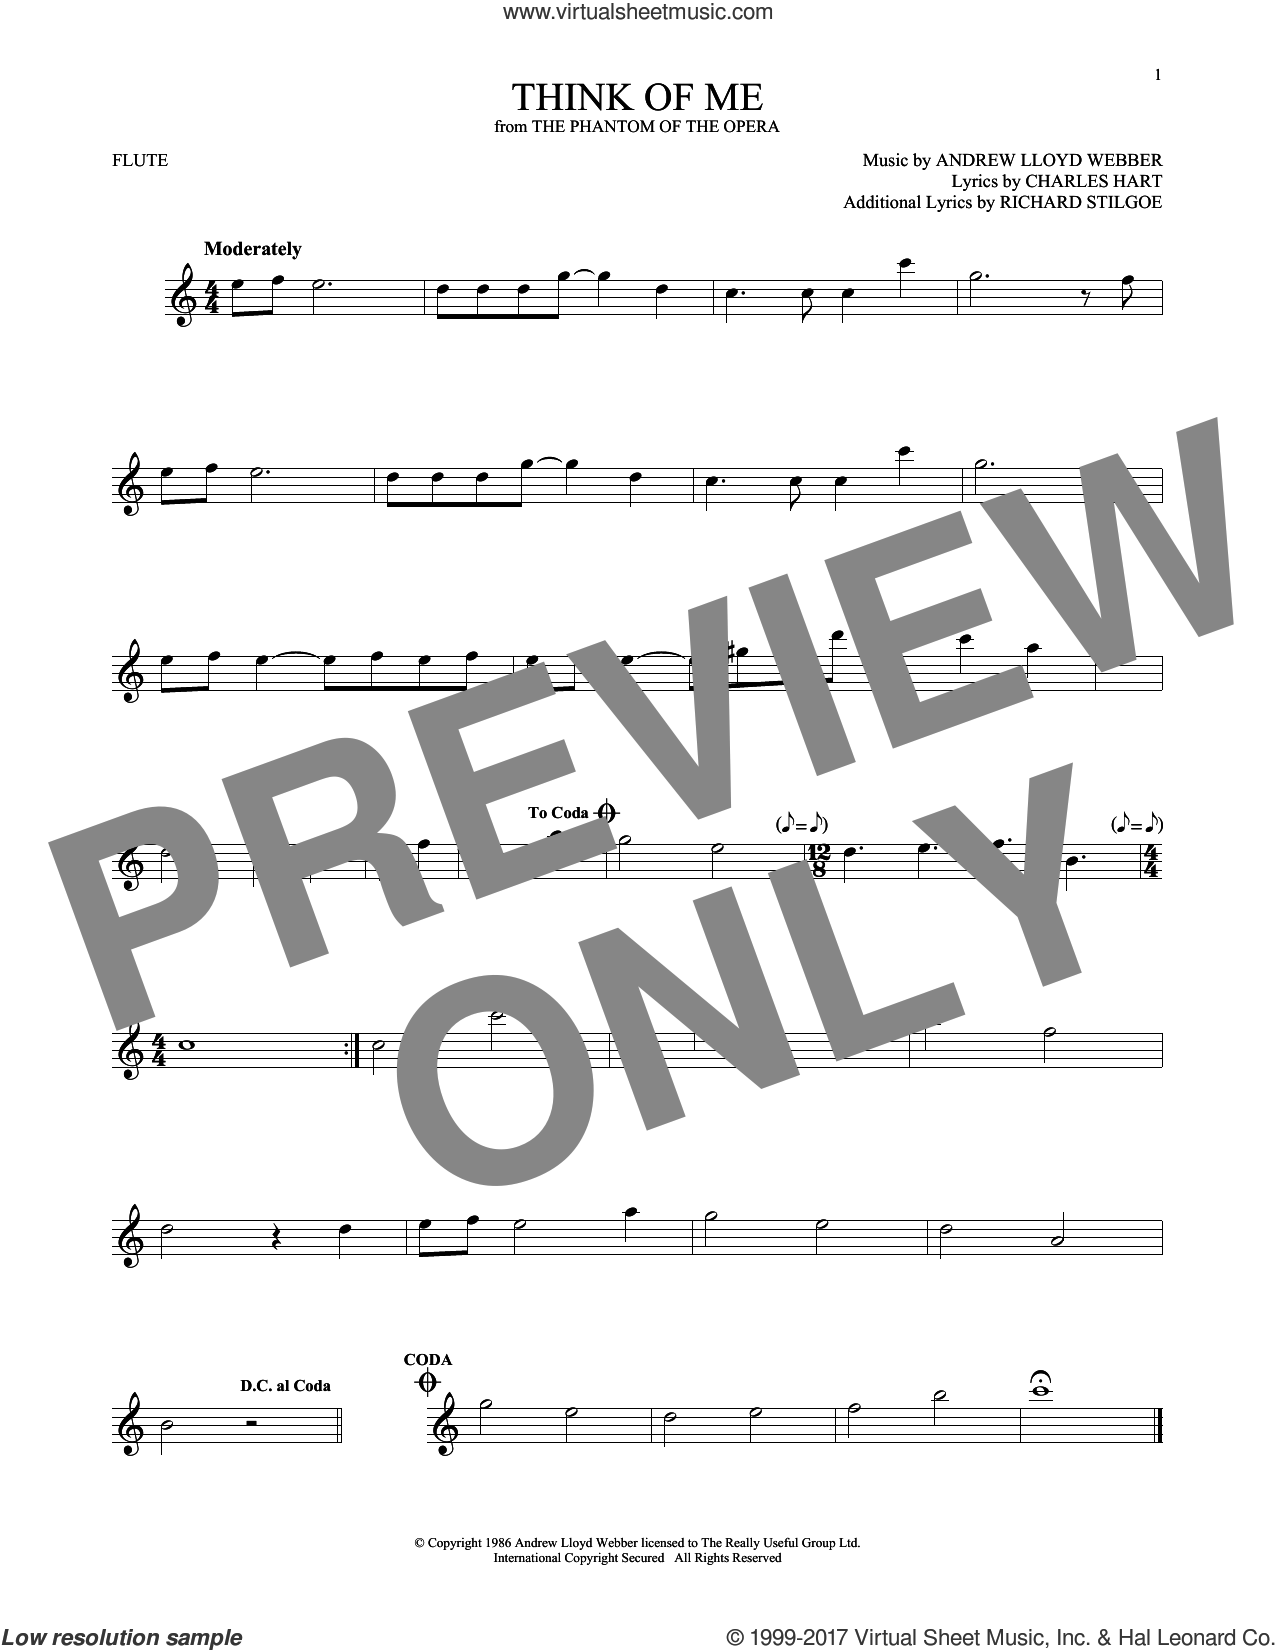 Think Of Me sheet music for flute solo by Andrew Lloyd Webber, Charles Hart and Richard Stilgoe, intermediate skill level